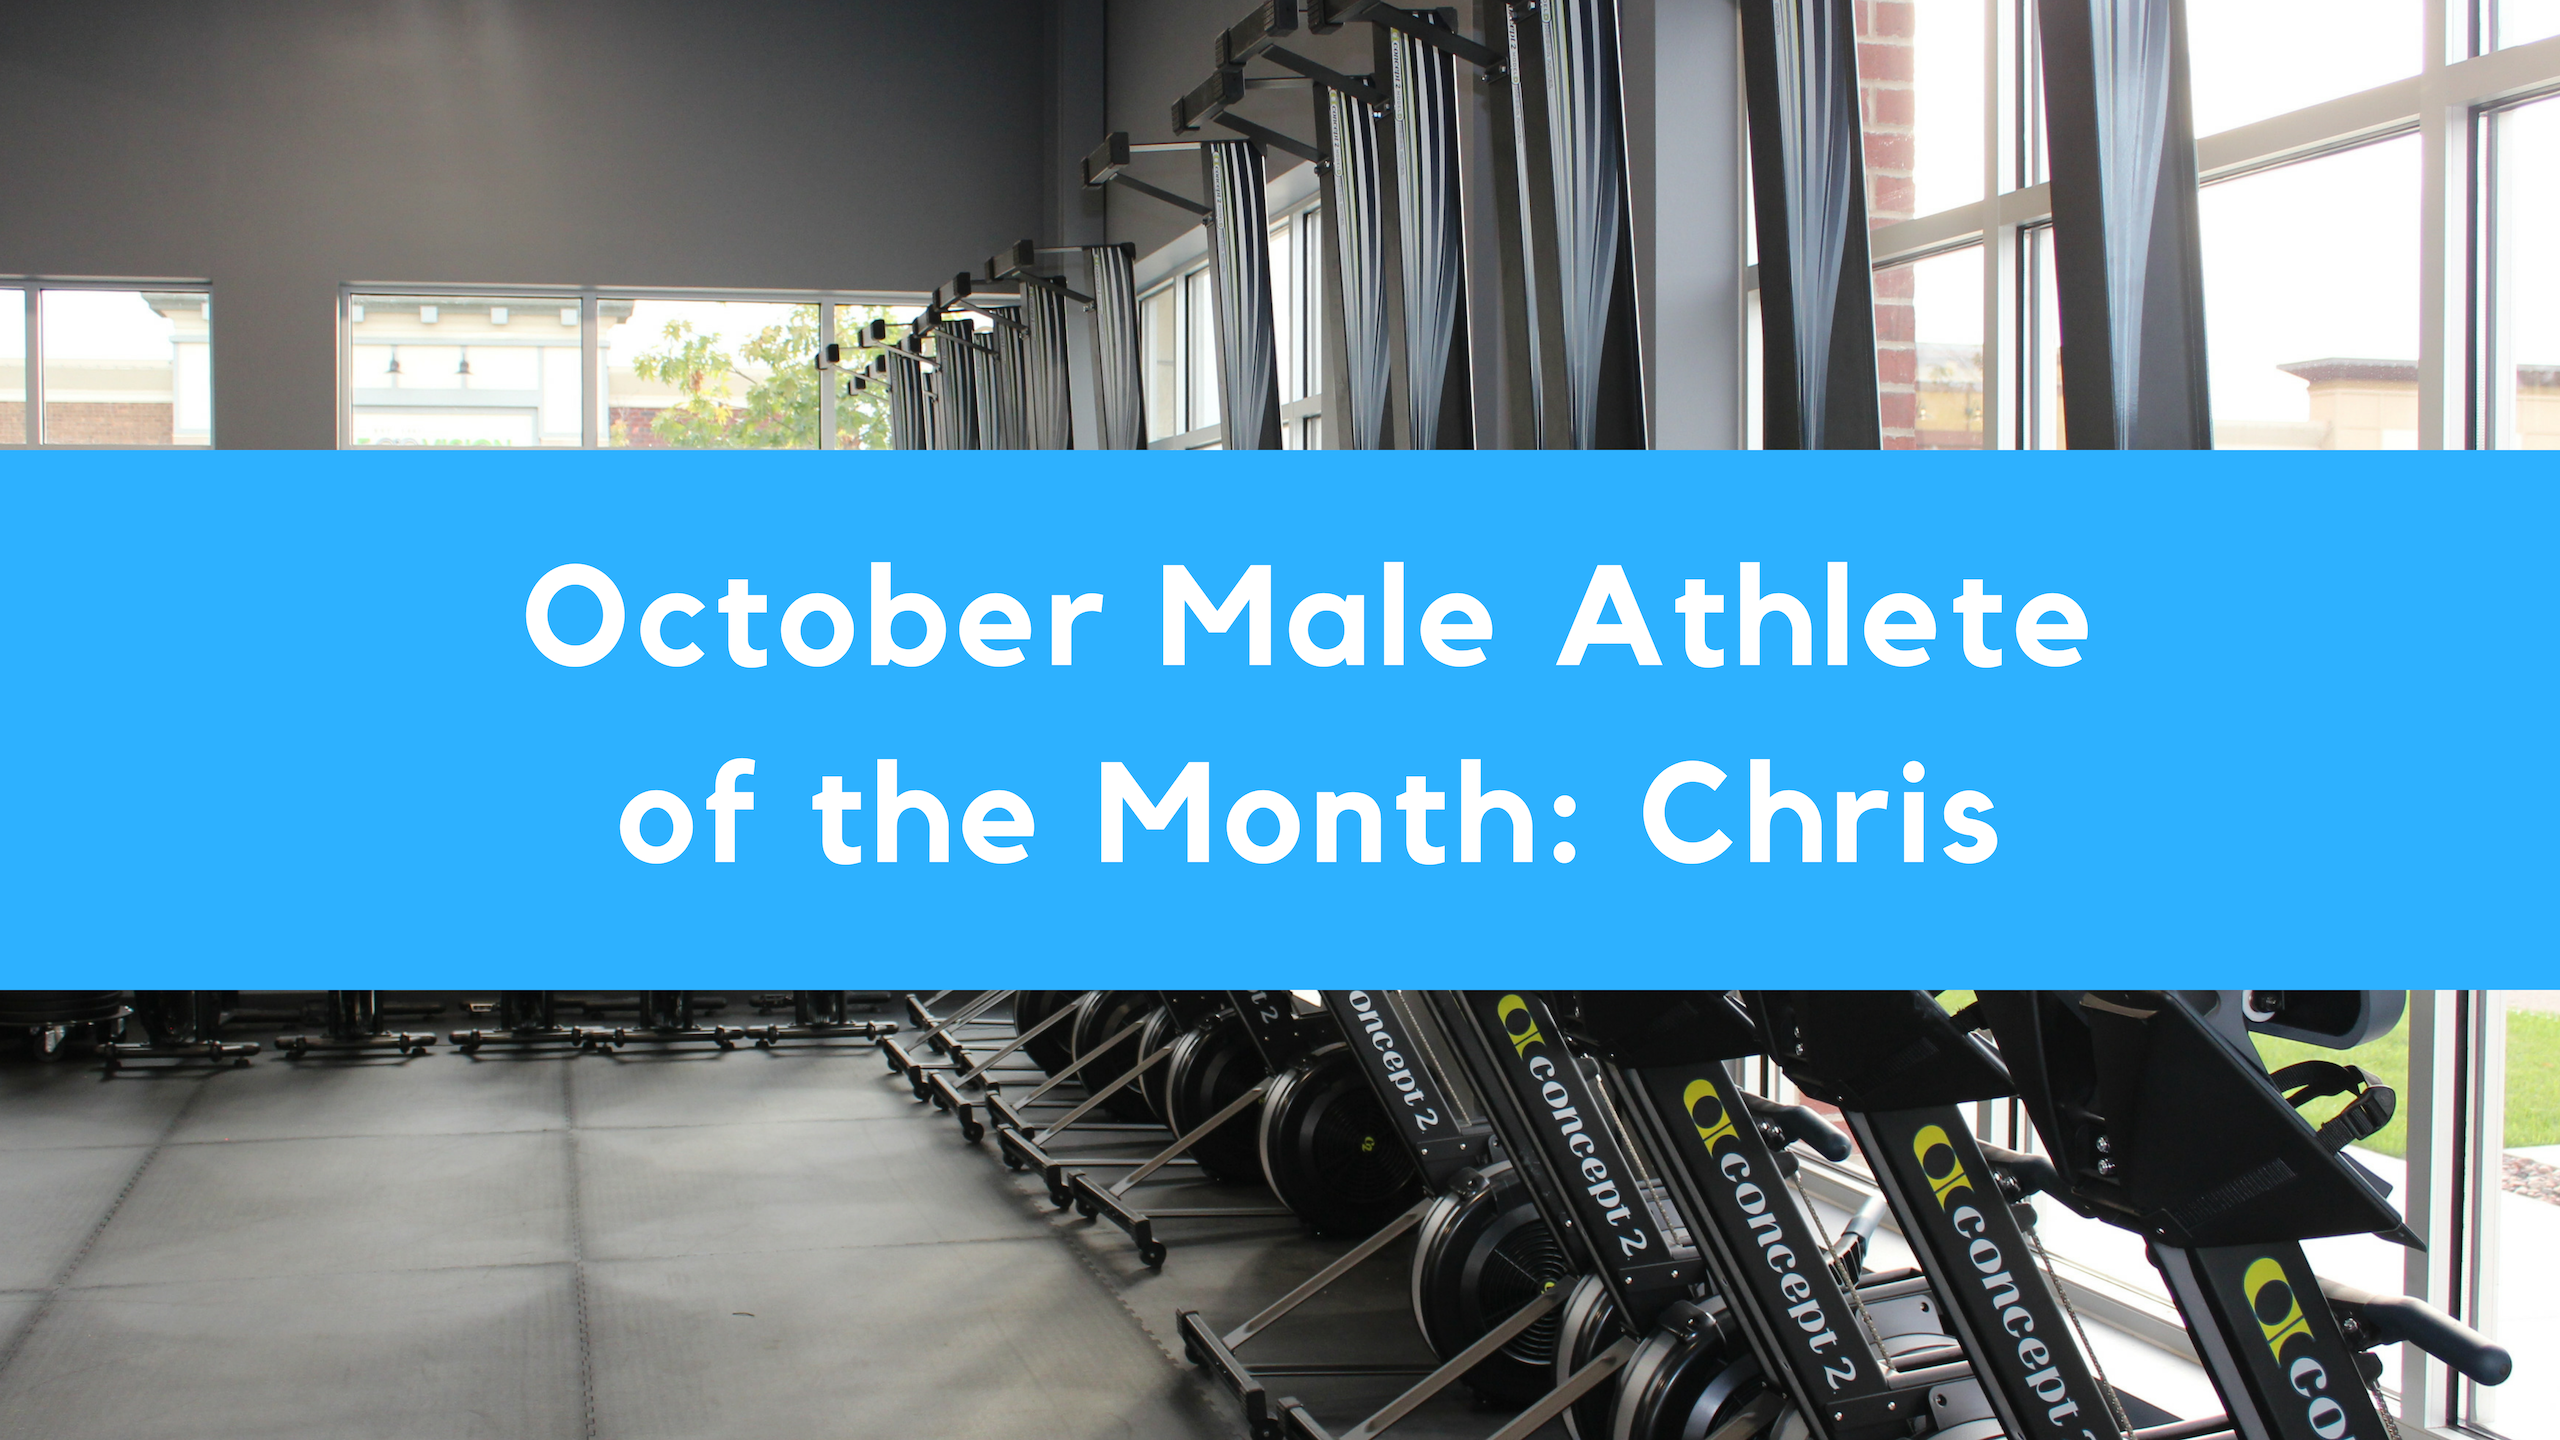 October Male Athlete of the Month: Chris